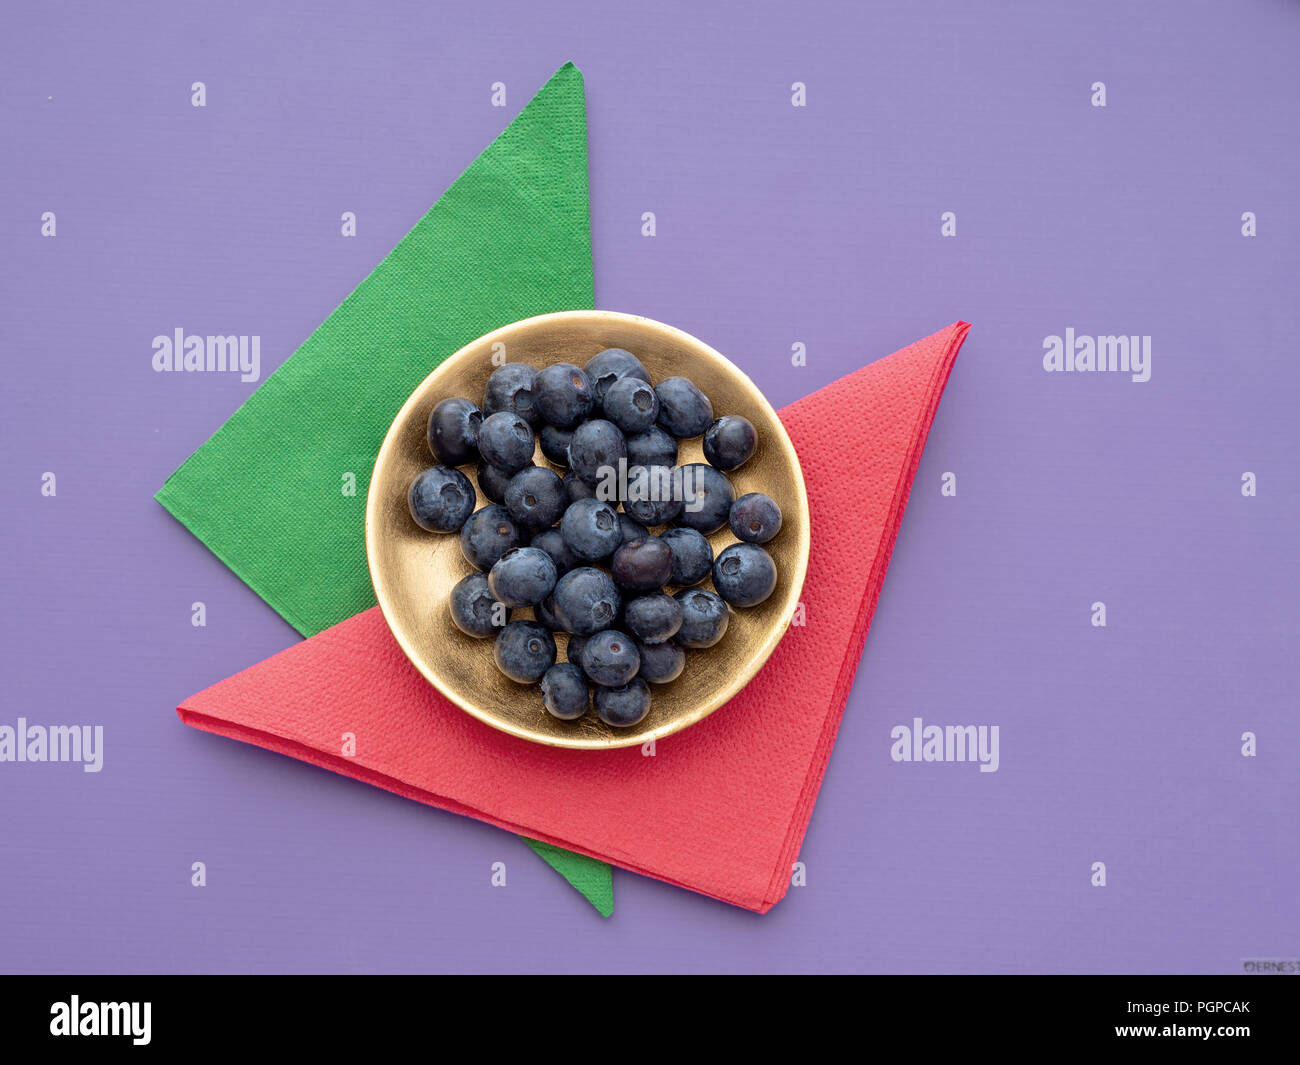 Healthy superfood blueberries on colourful background with paper napkins, serviettes and gold plate. - Stock Image